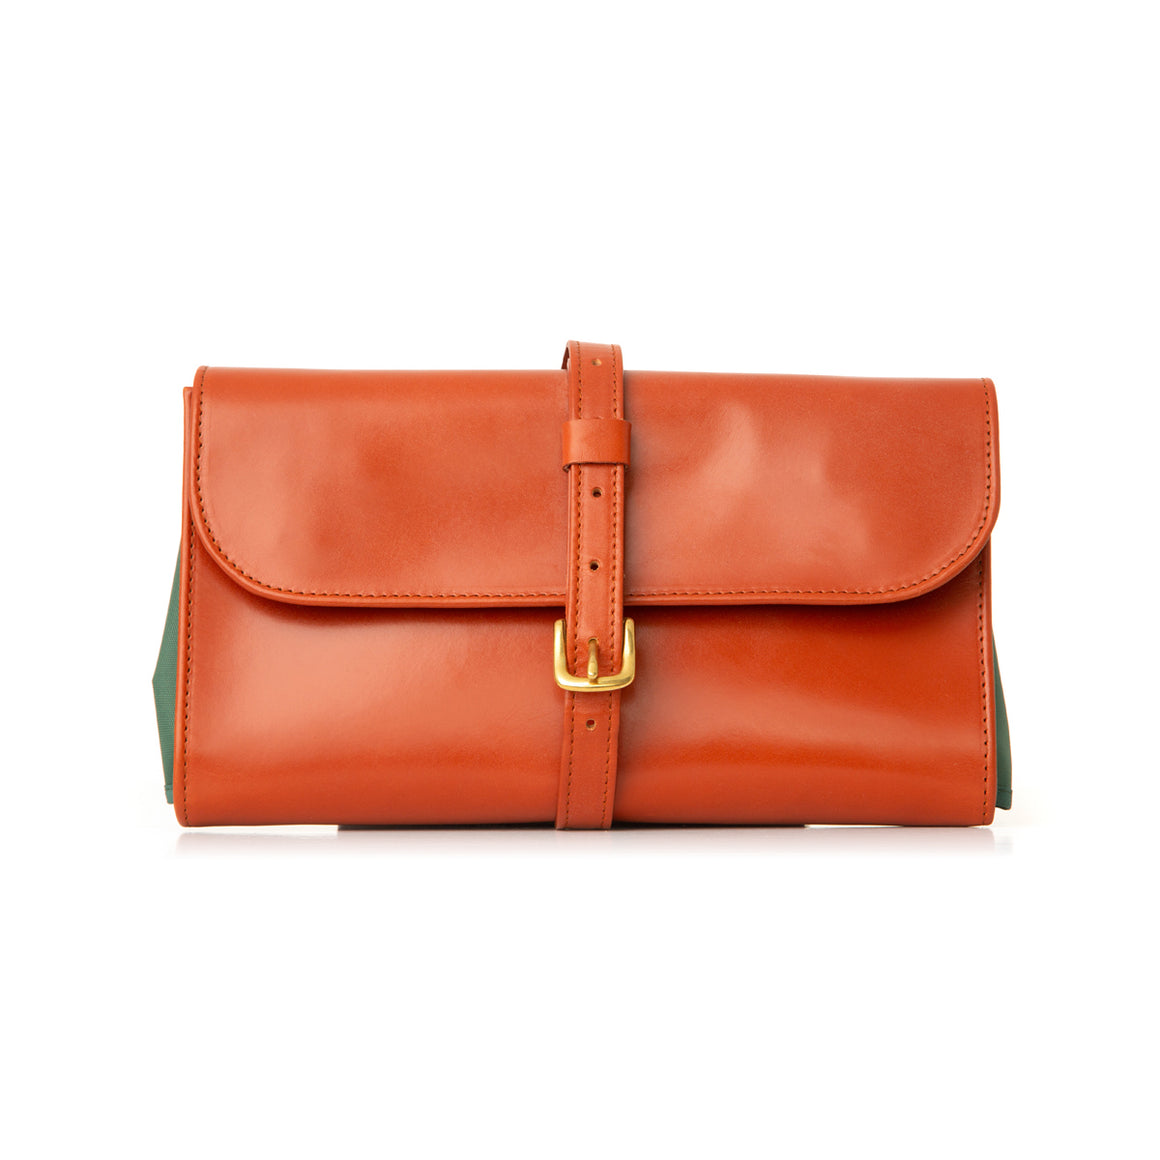 Tan Leather Hanging Wash Bag